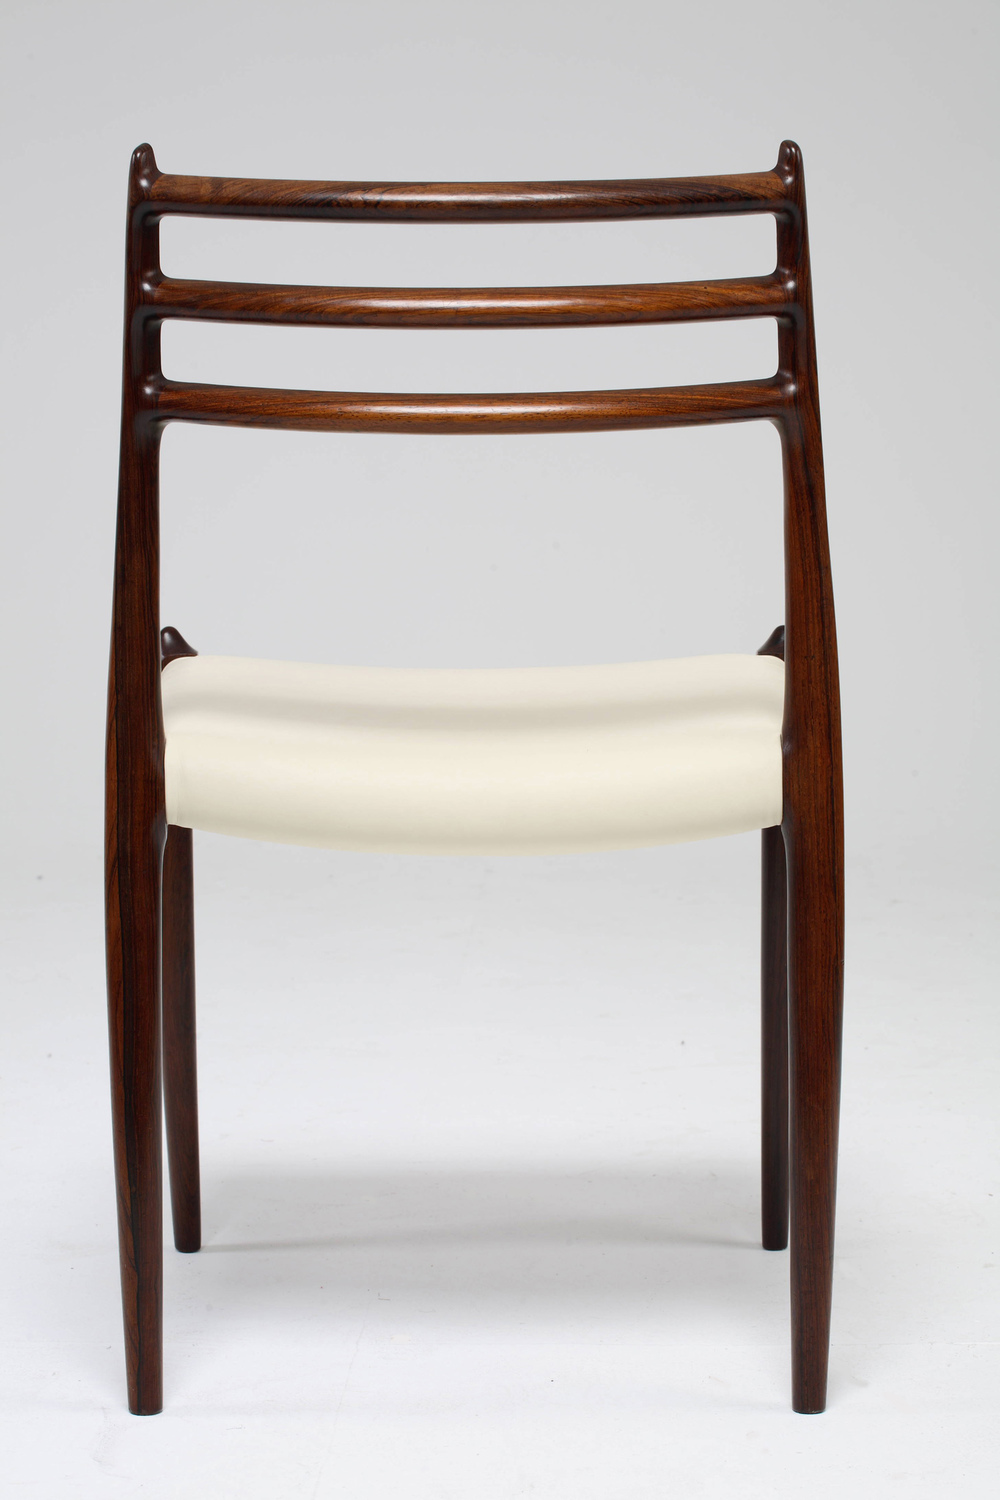 Chair_3_004_resize.jpg